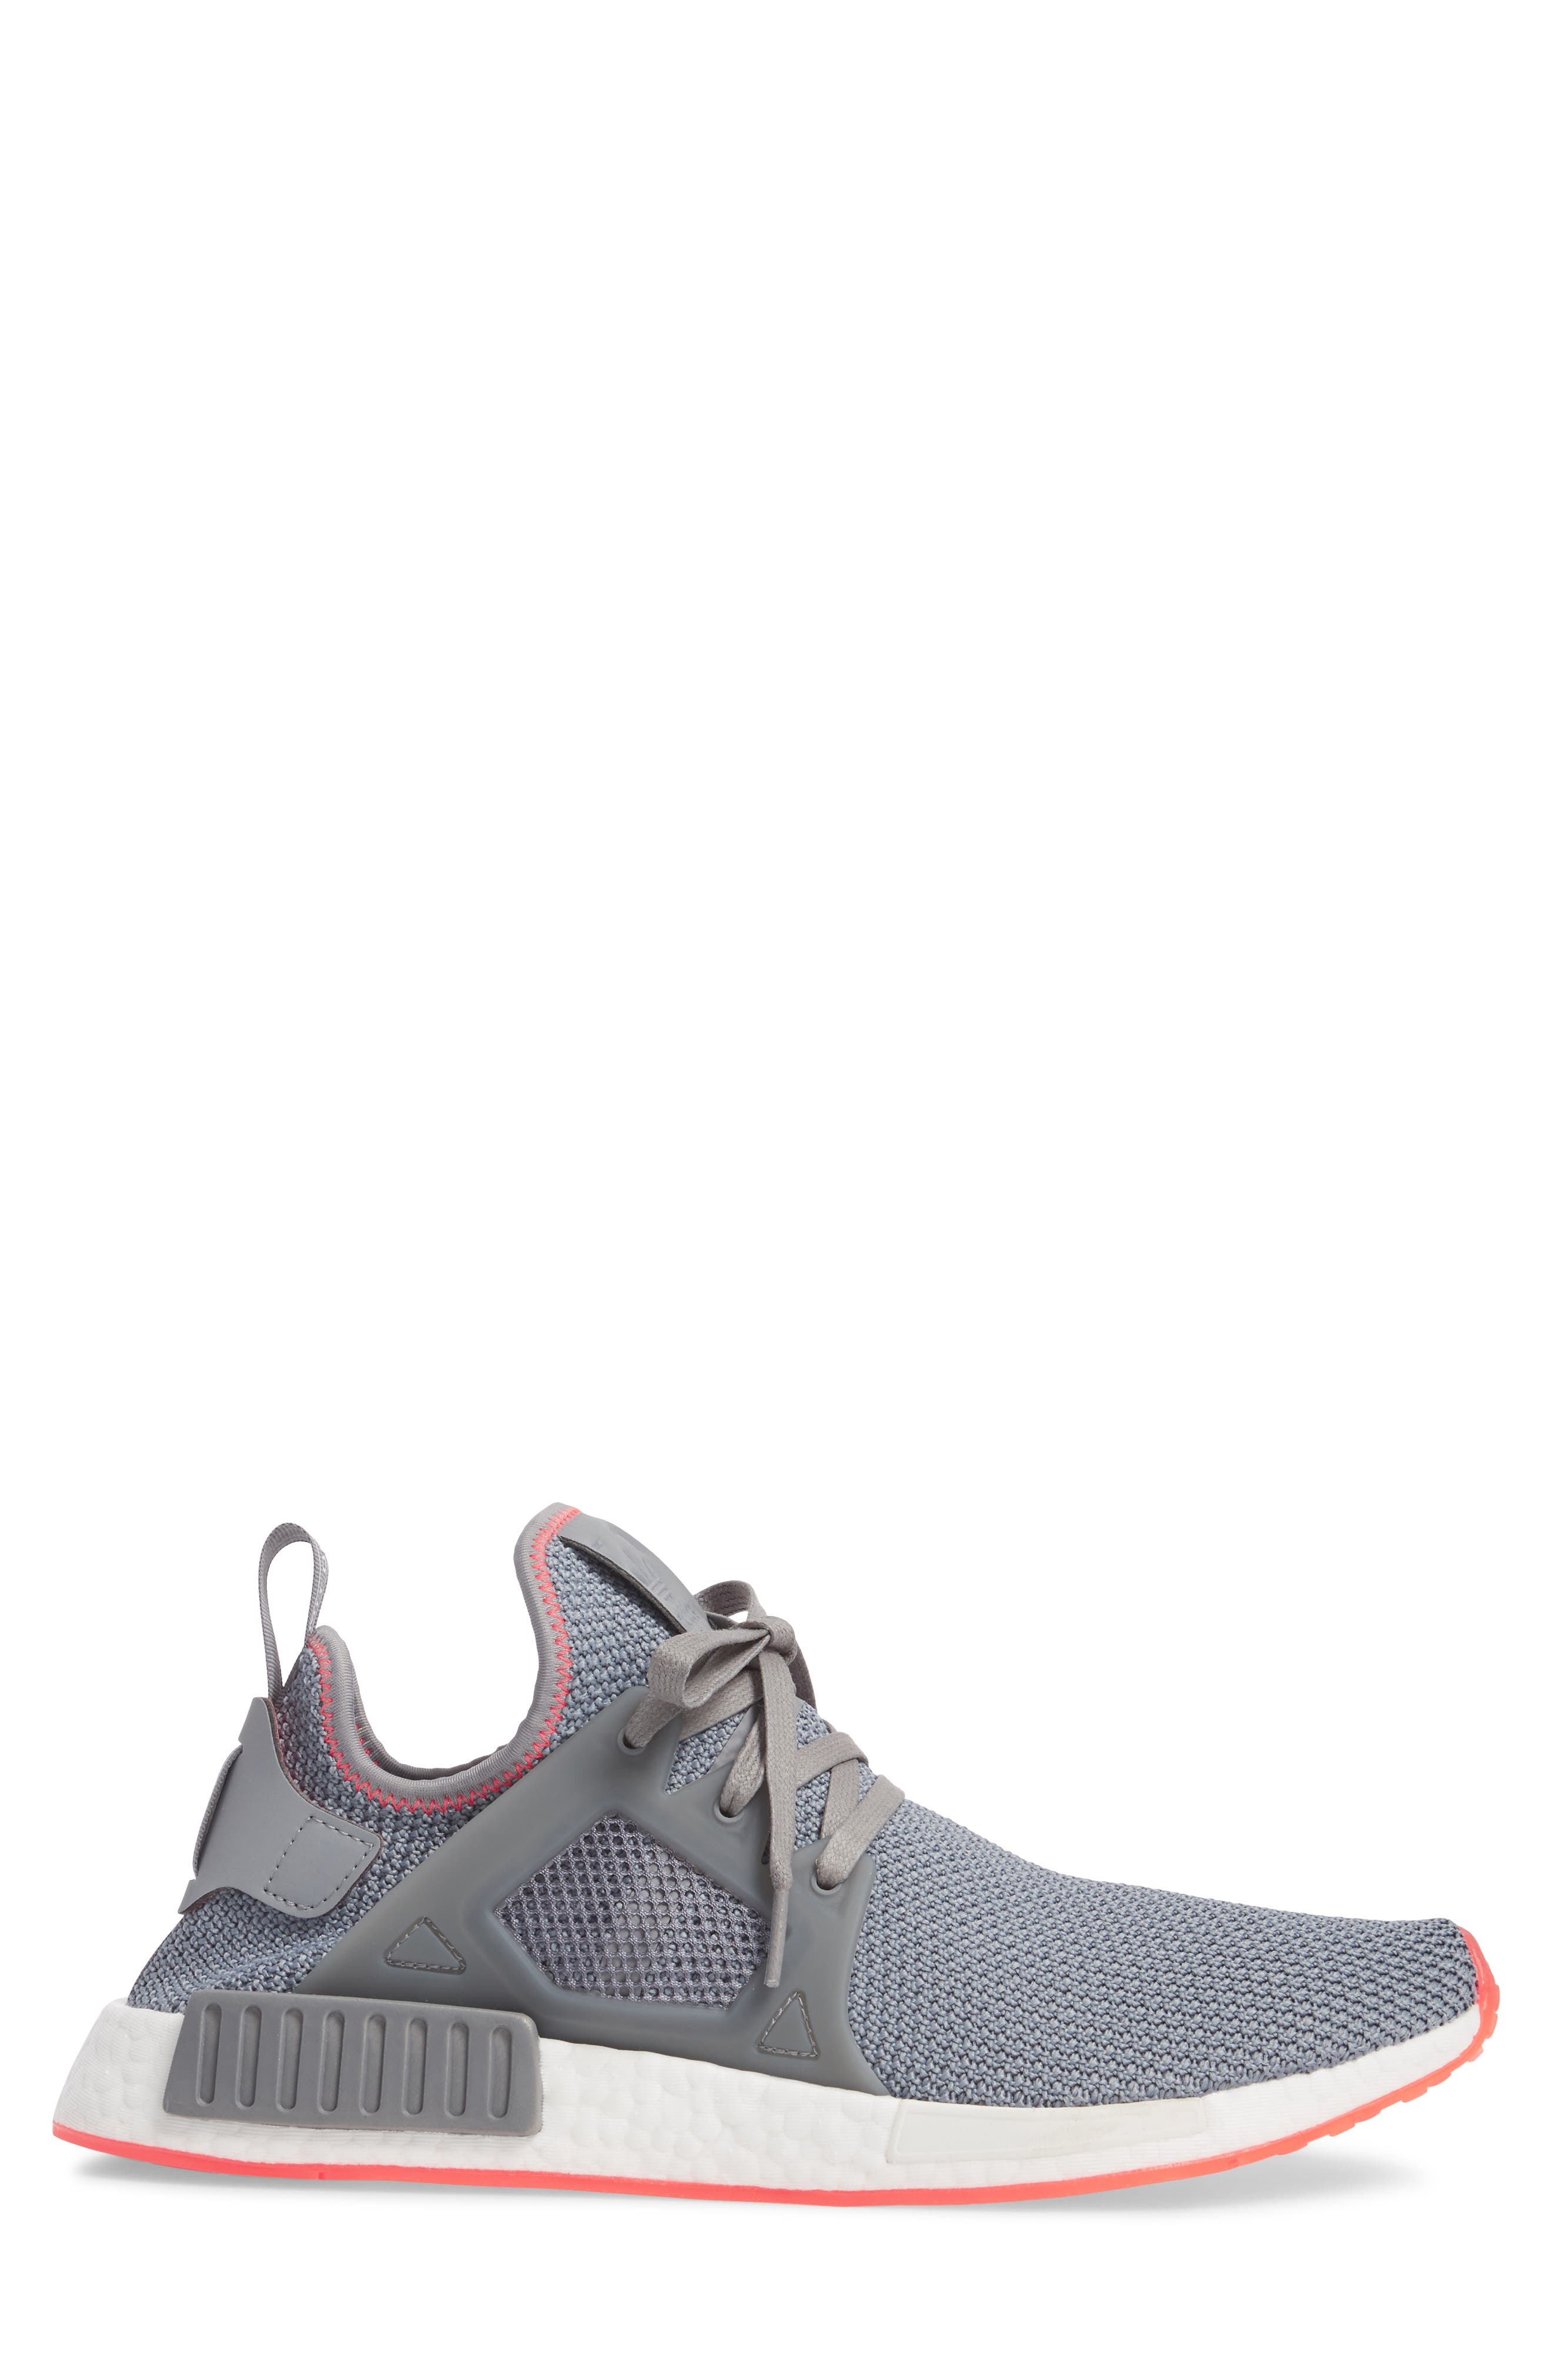 NMD_XR1 Sneaker,                             Alternate thumbnail 3, color,                             Grey Heather/ Red